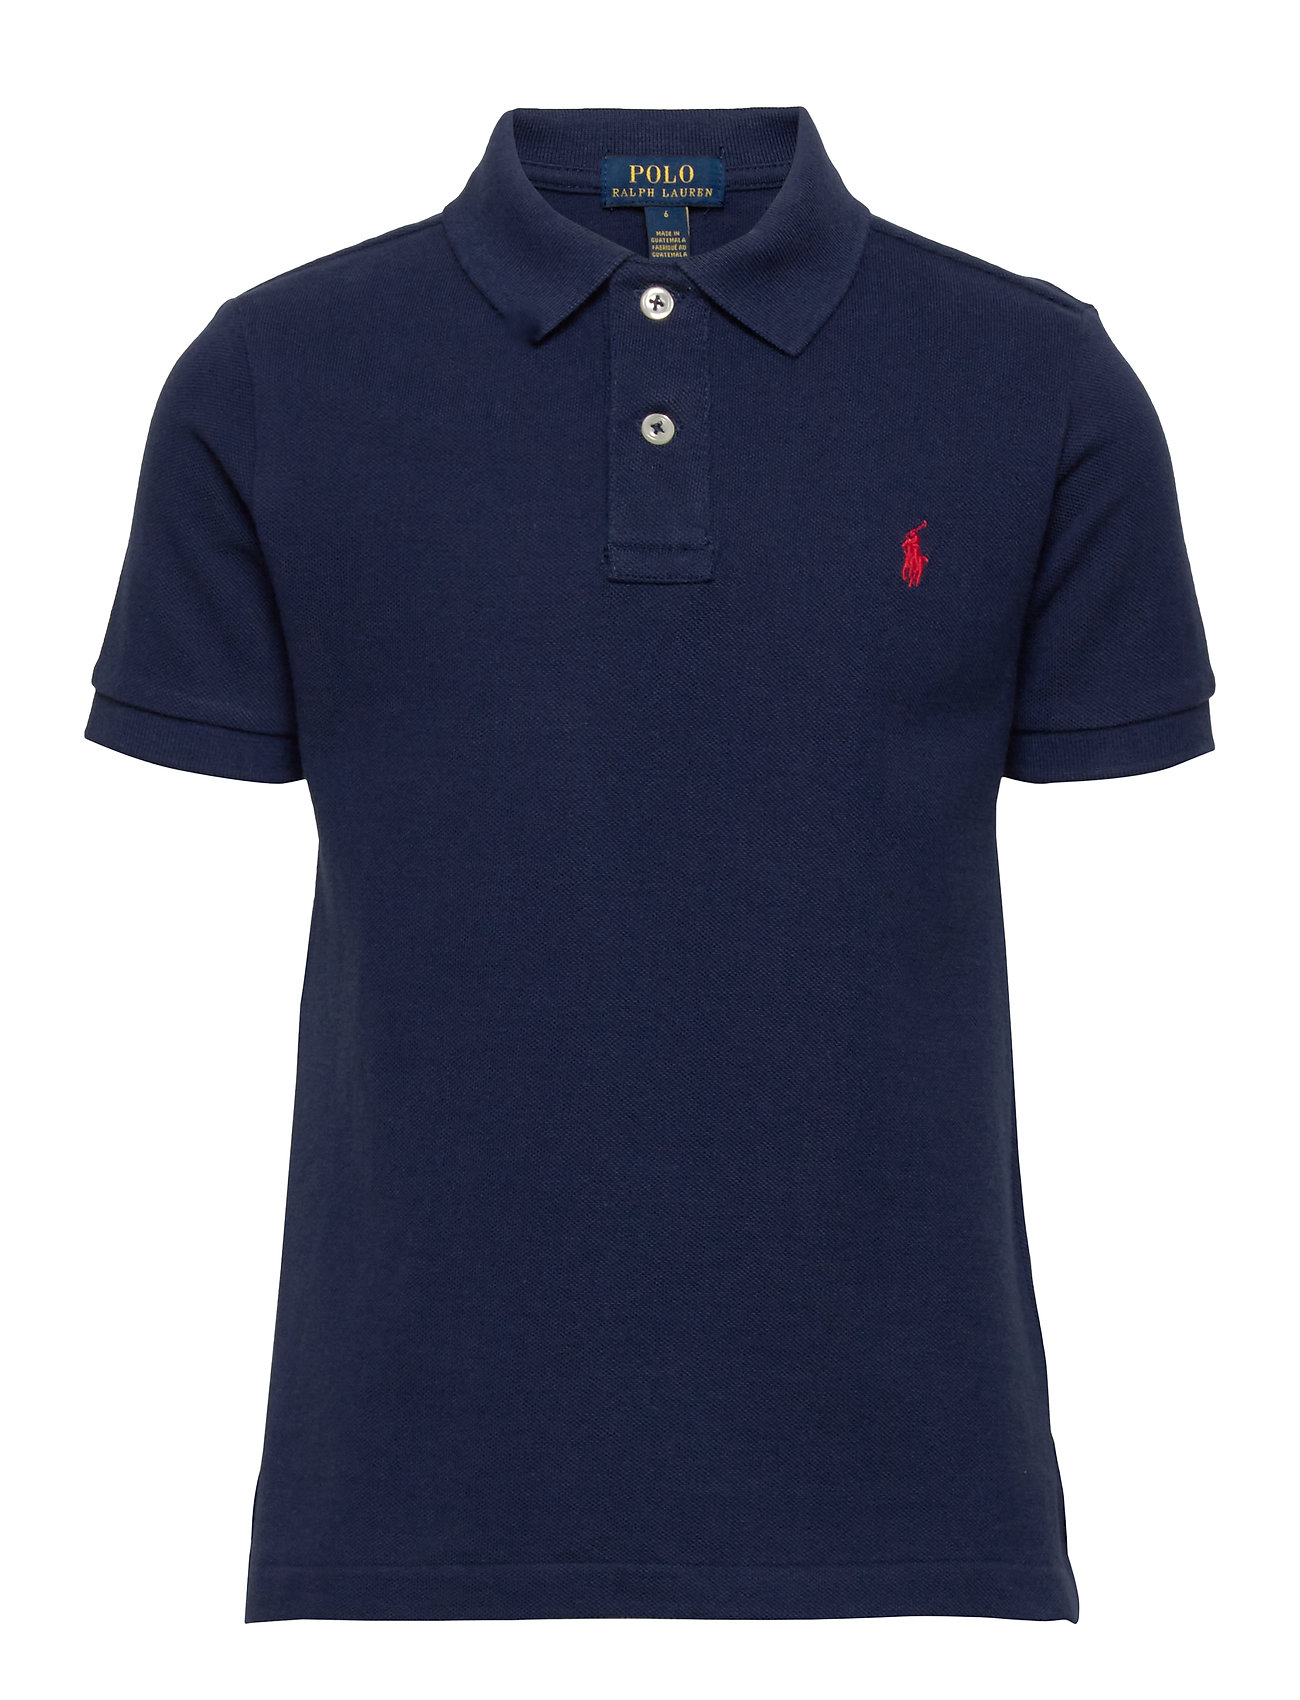 Ralph Lauren Kids SS CLASSIC POLO - FRENCH NAVY